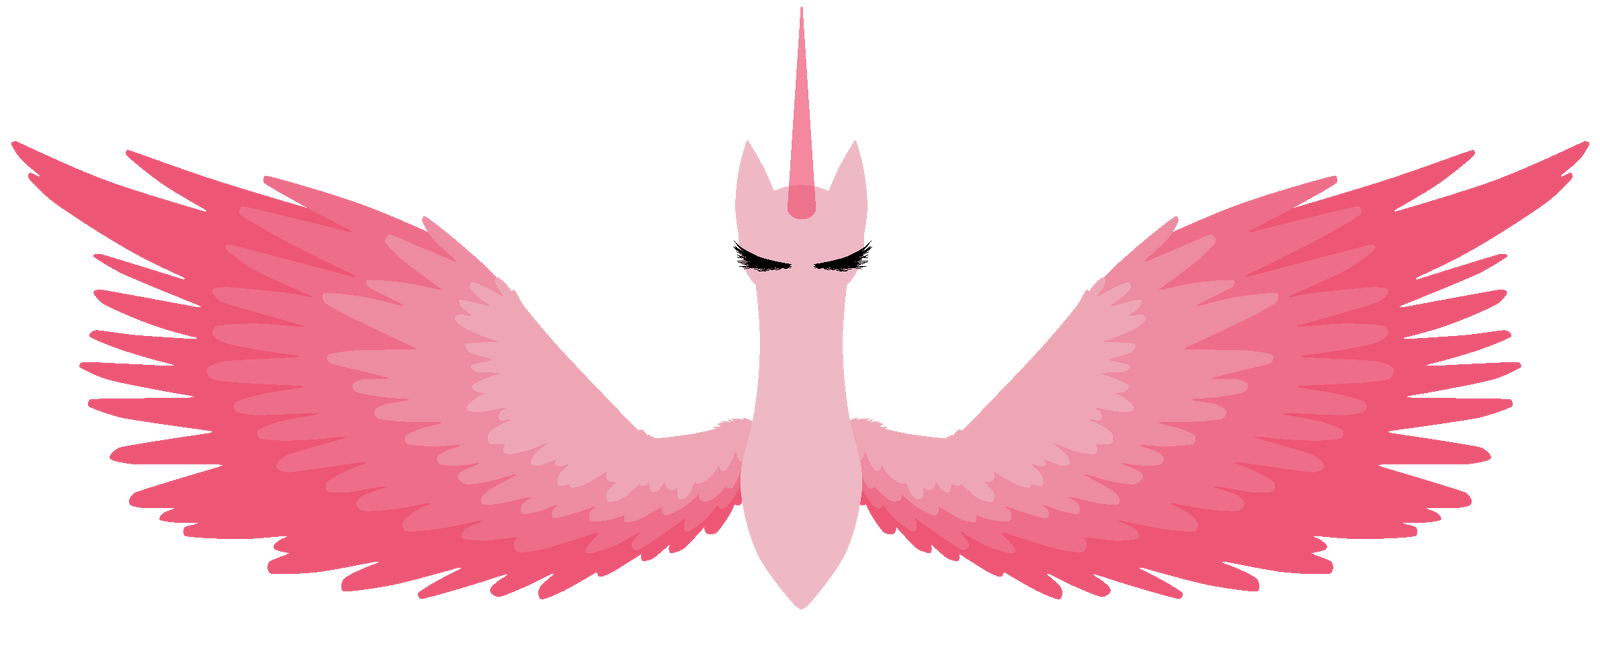 Minimalistic Wings Base by StoryOfMyBases on DeviantArt